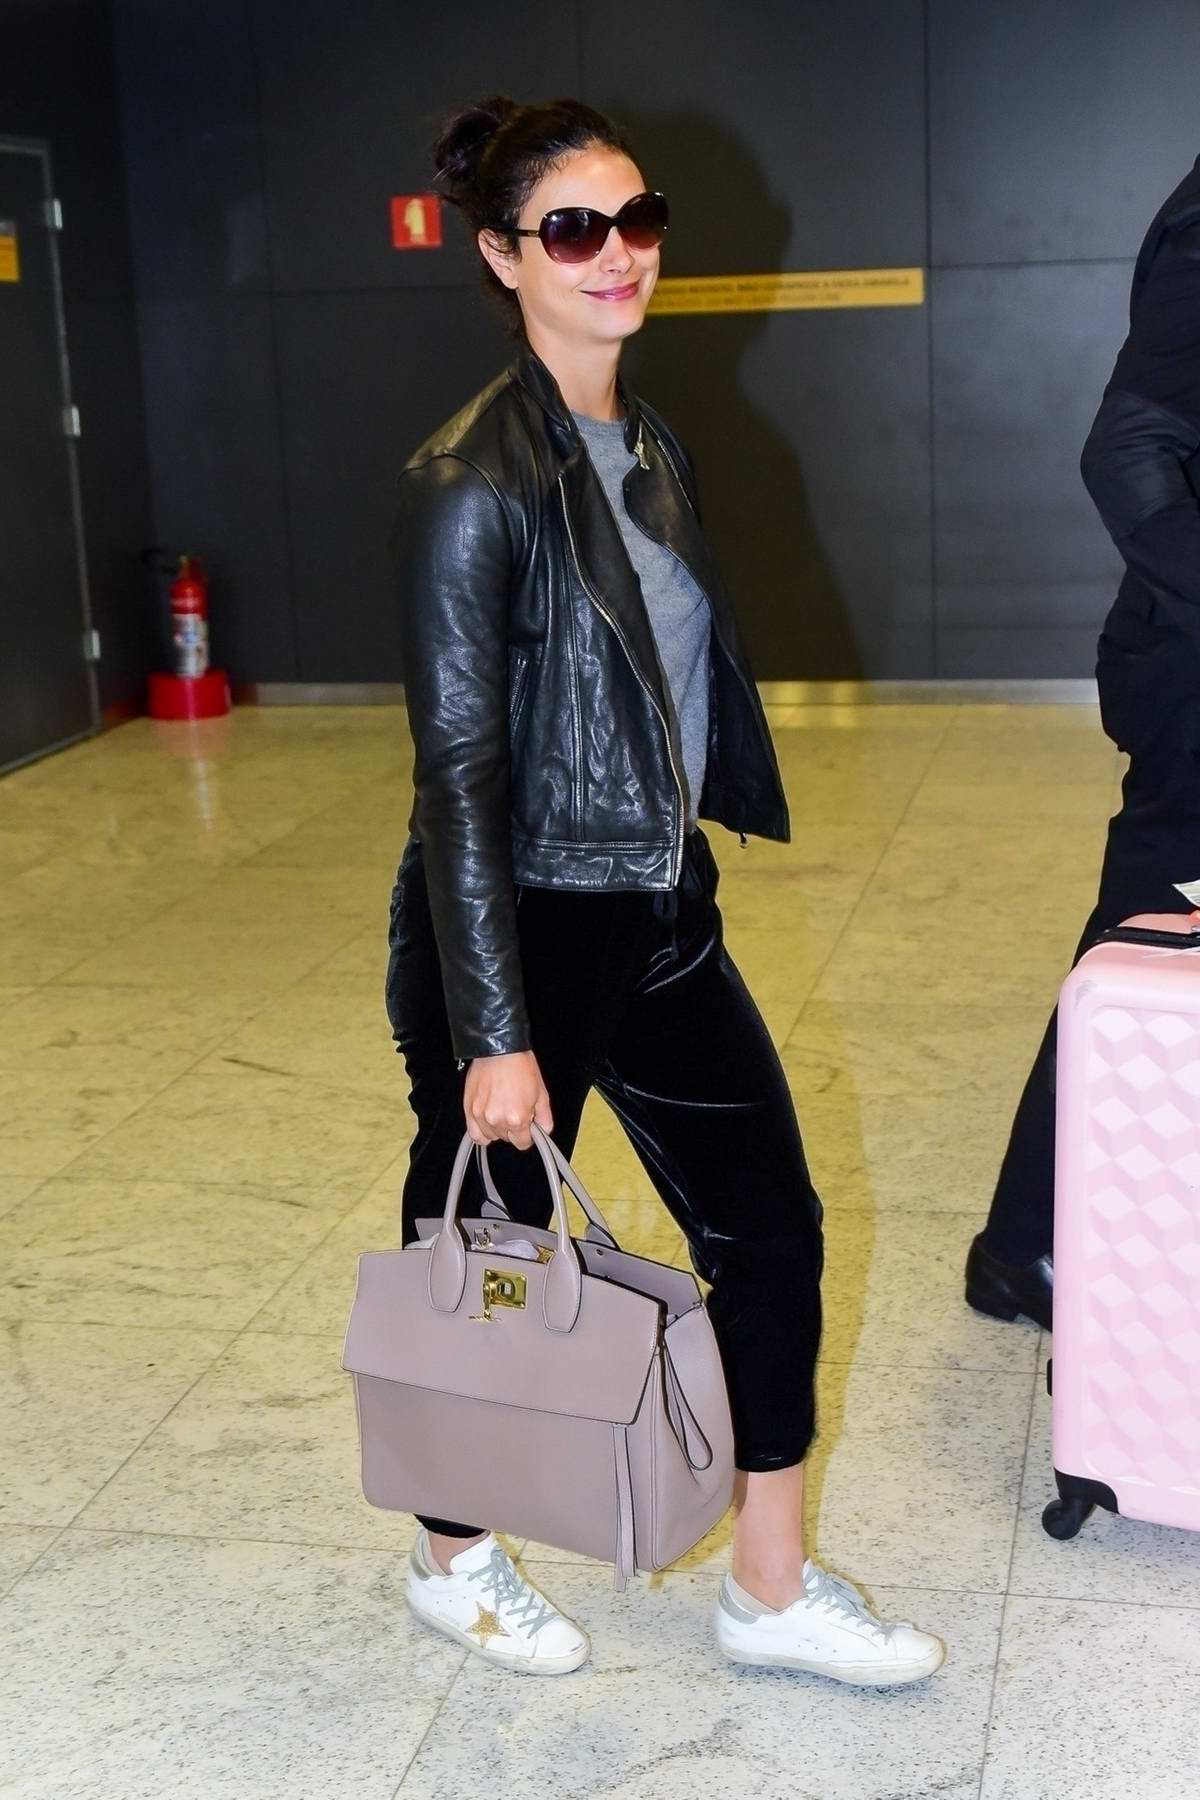 Morena Baccarin arrives at Guarulhos International Aiport in Sao Paulo, Brazil